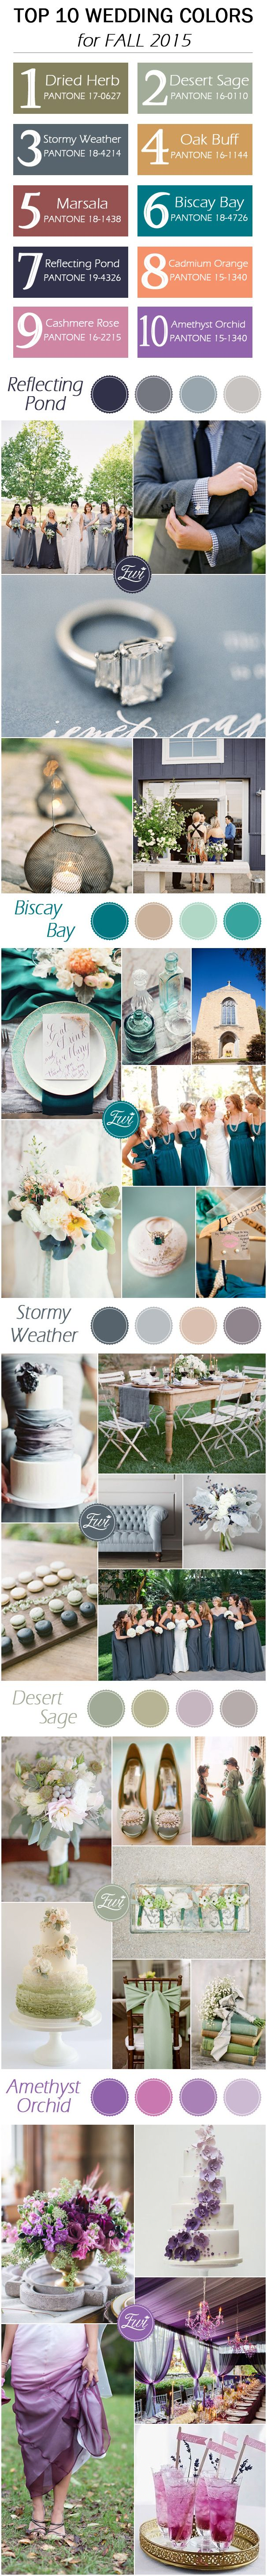 top 10 fall wedding color ideas 2015 released by Pantone